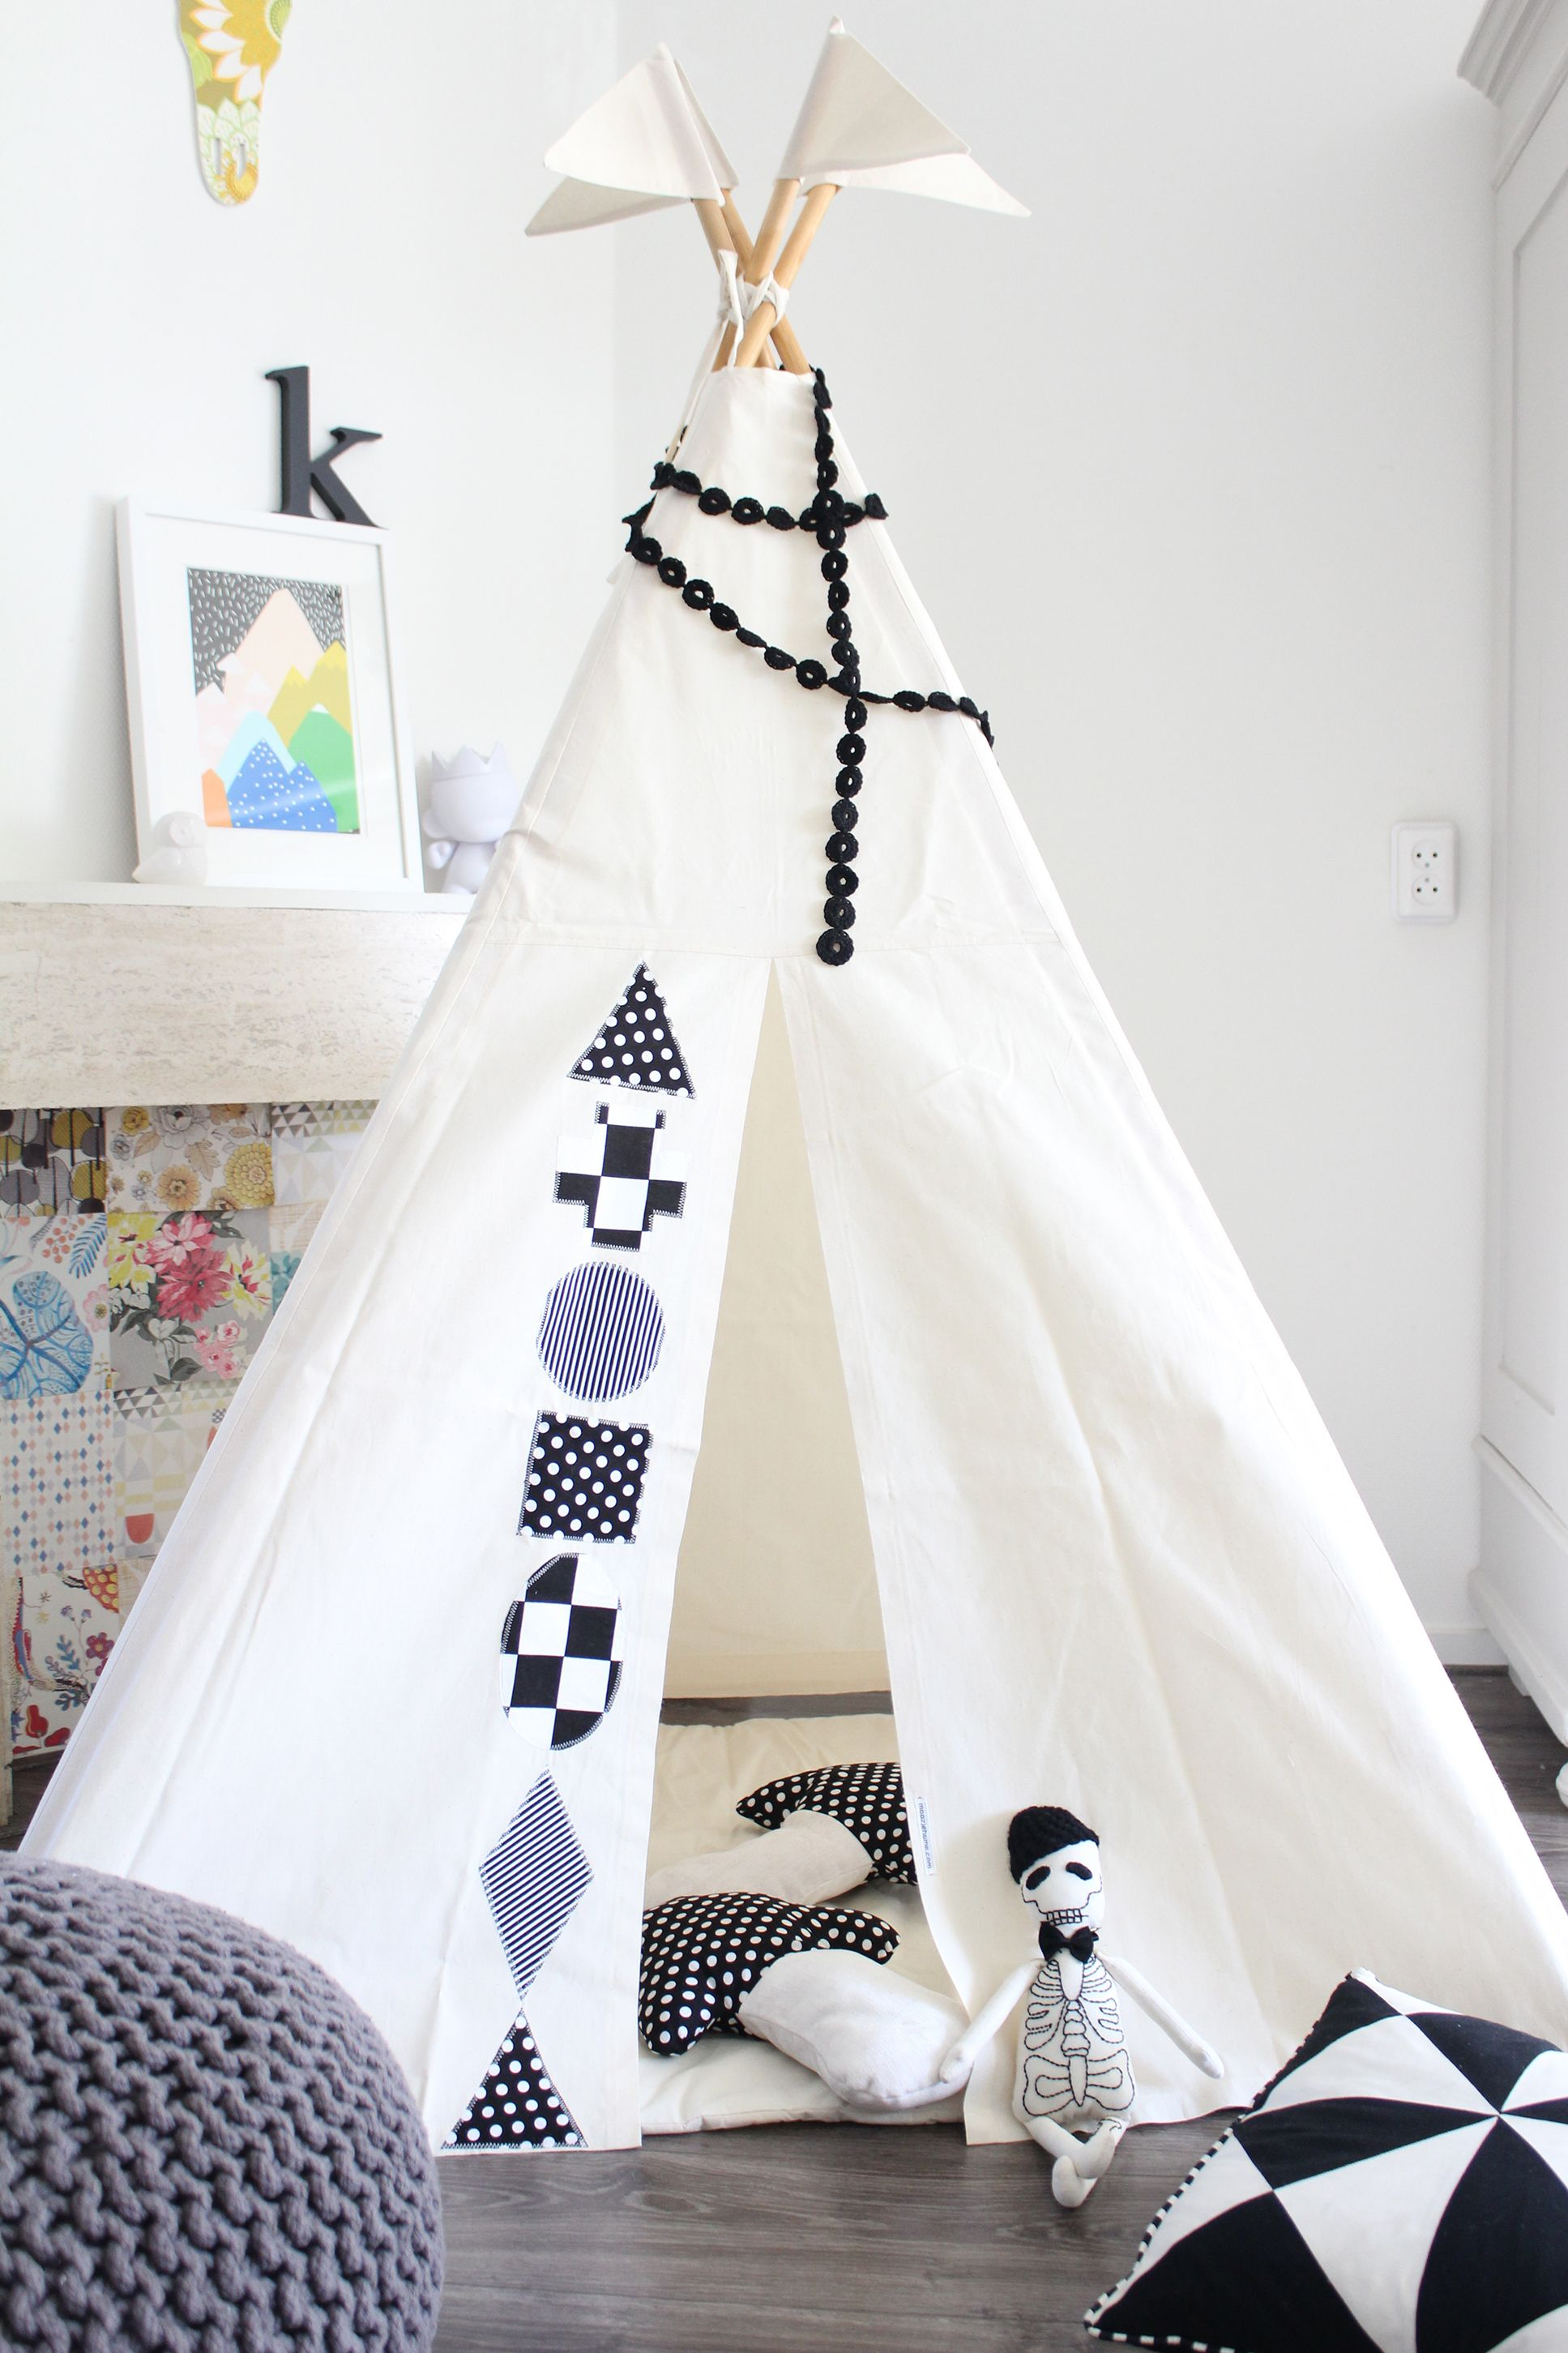 Kids Teepee tent by Moozle on SALE in their